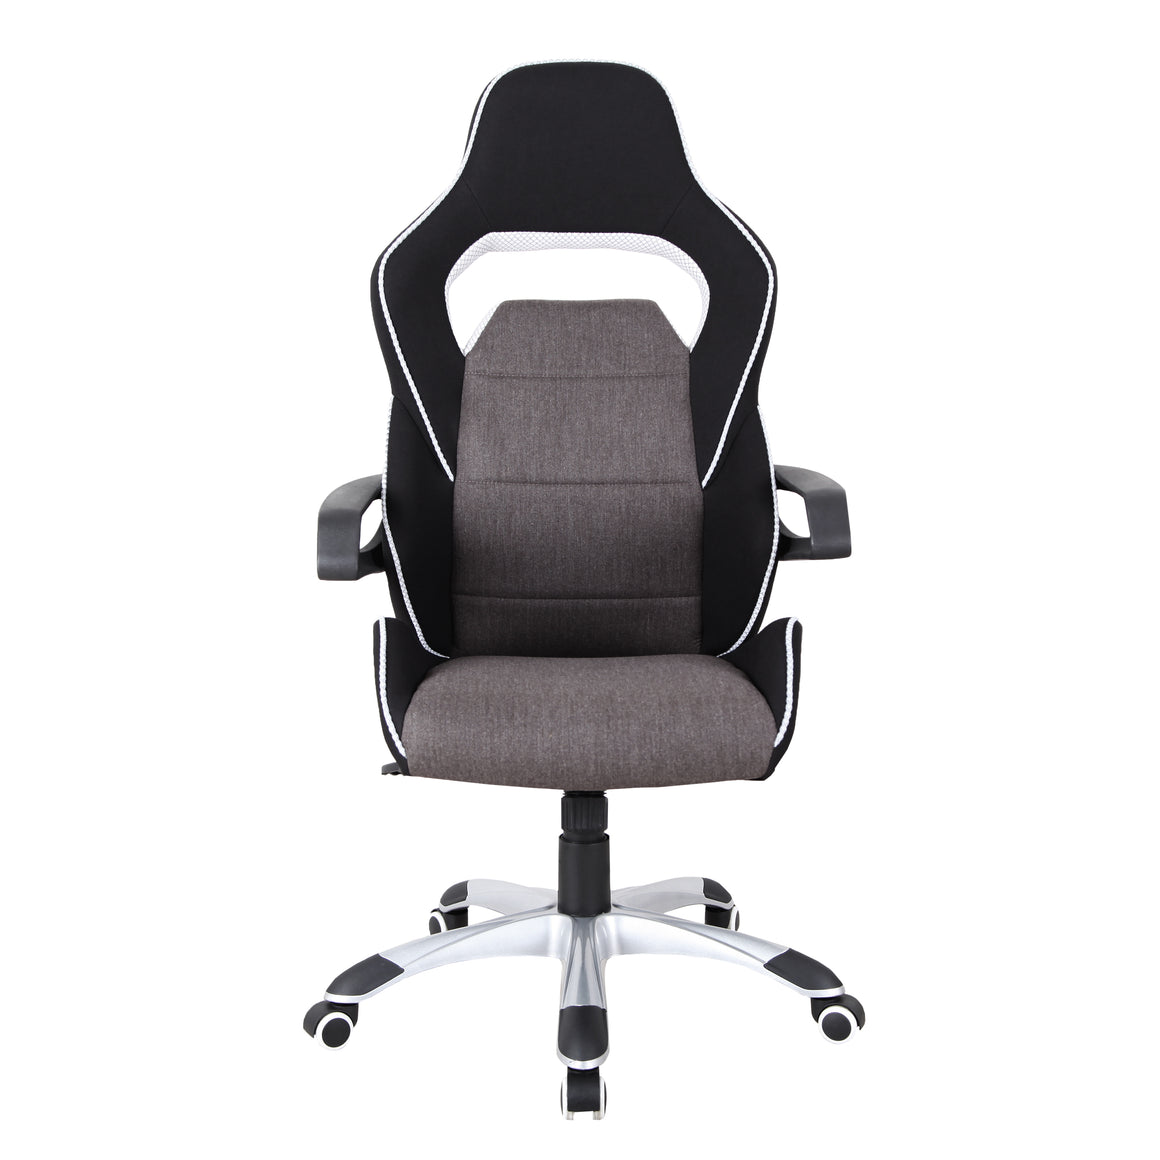 Ergonomic Upholstered Racing Style Home & Office Chair